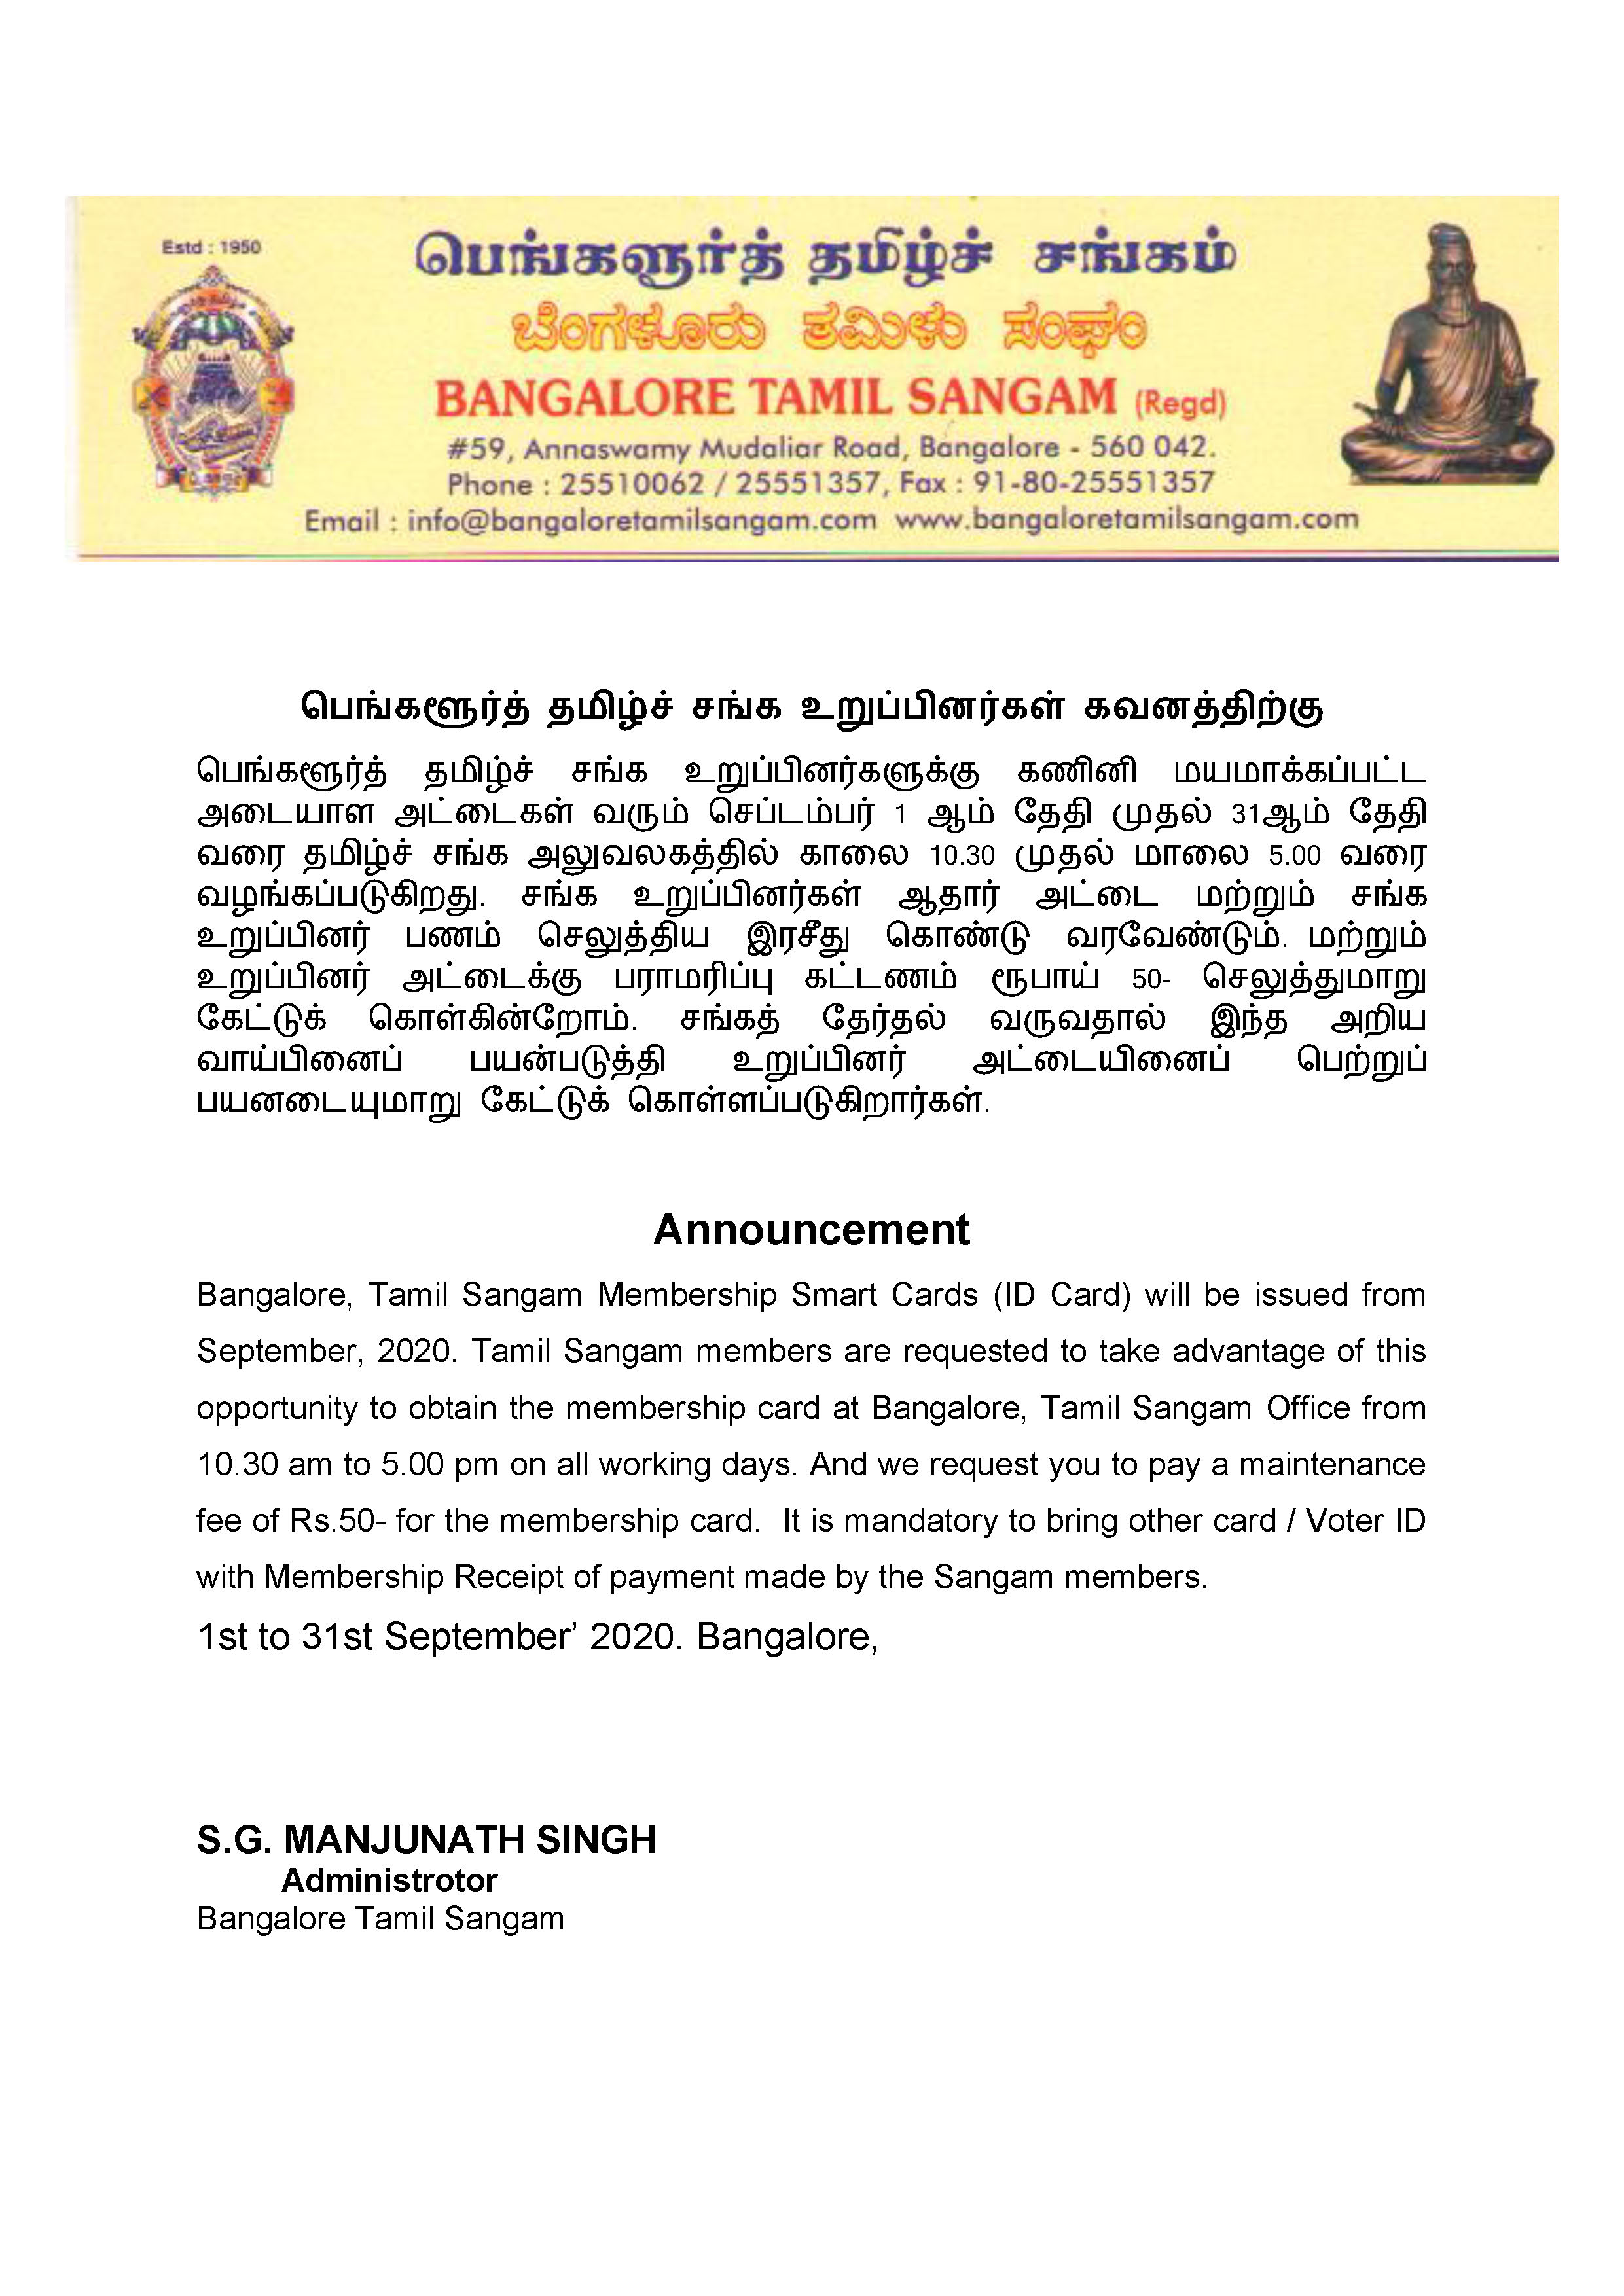 Attention-to-all-tamil-sangam-members_28-Aug-2020